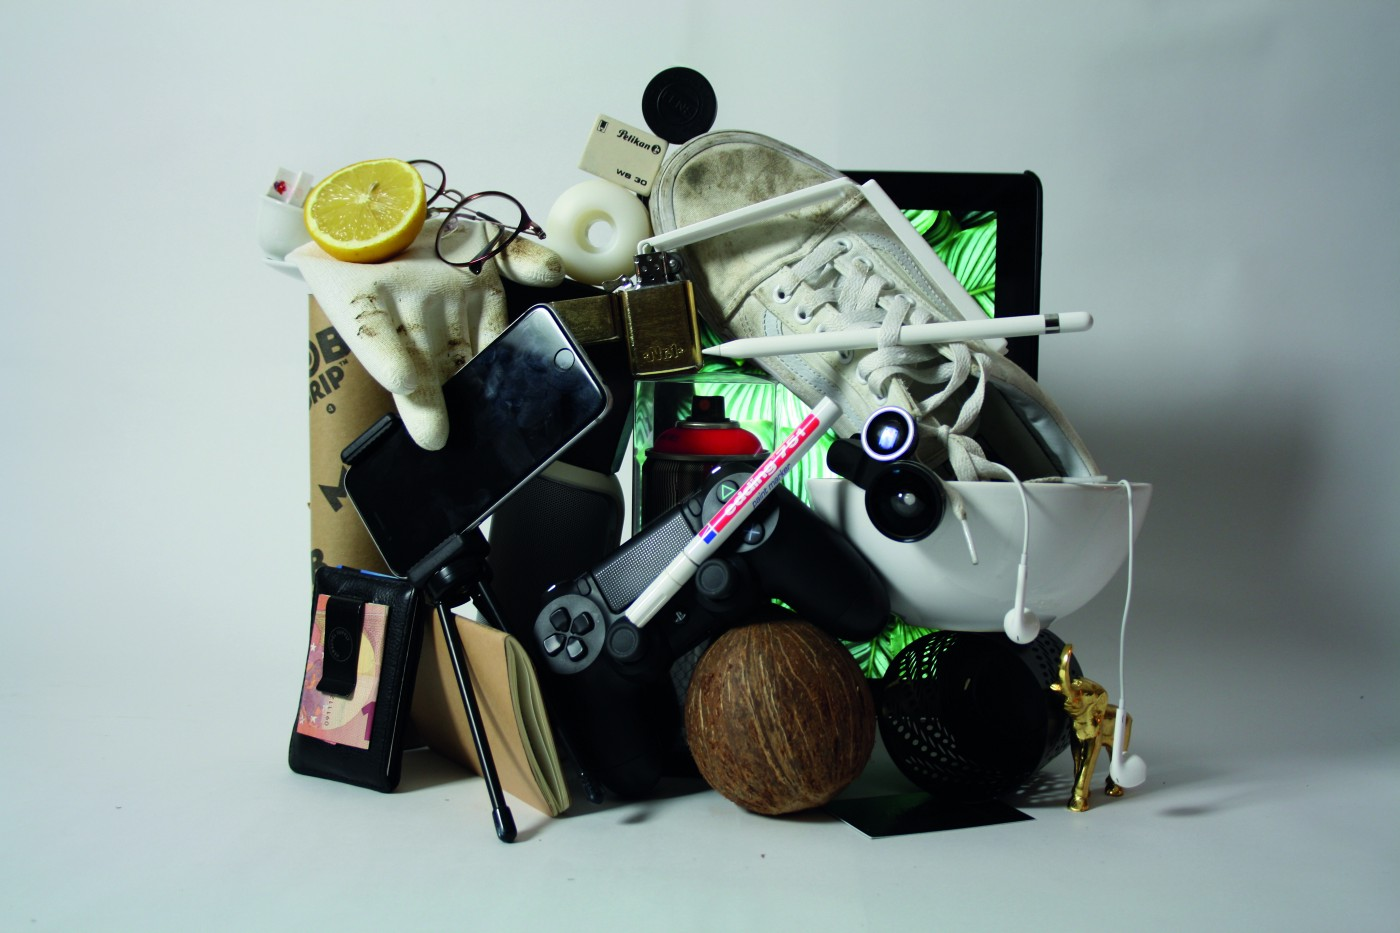 Pile of junk that includes cell phones, pens, and knickknacks.